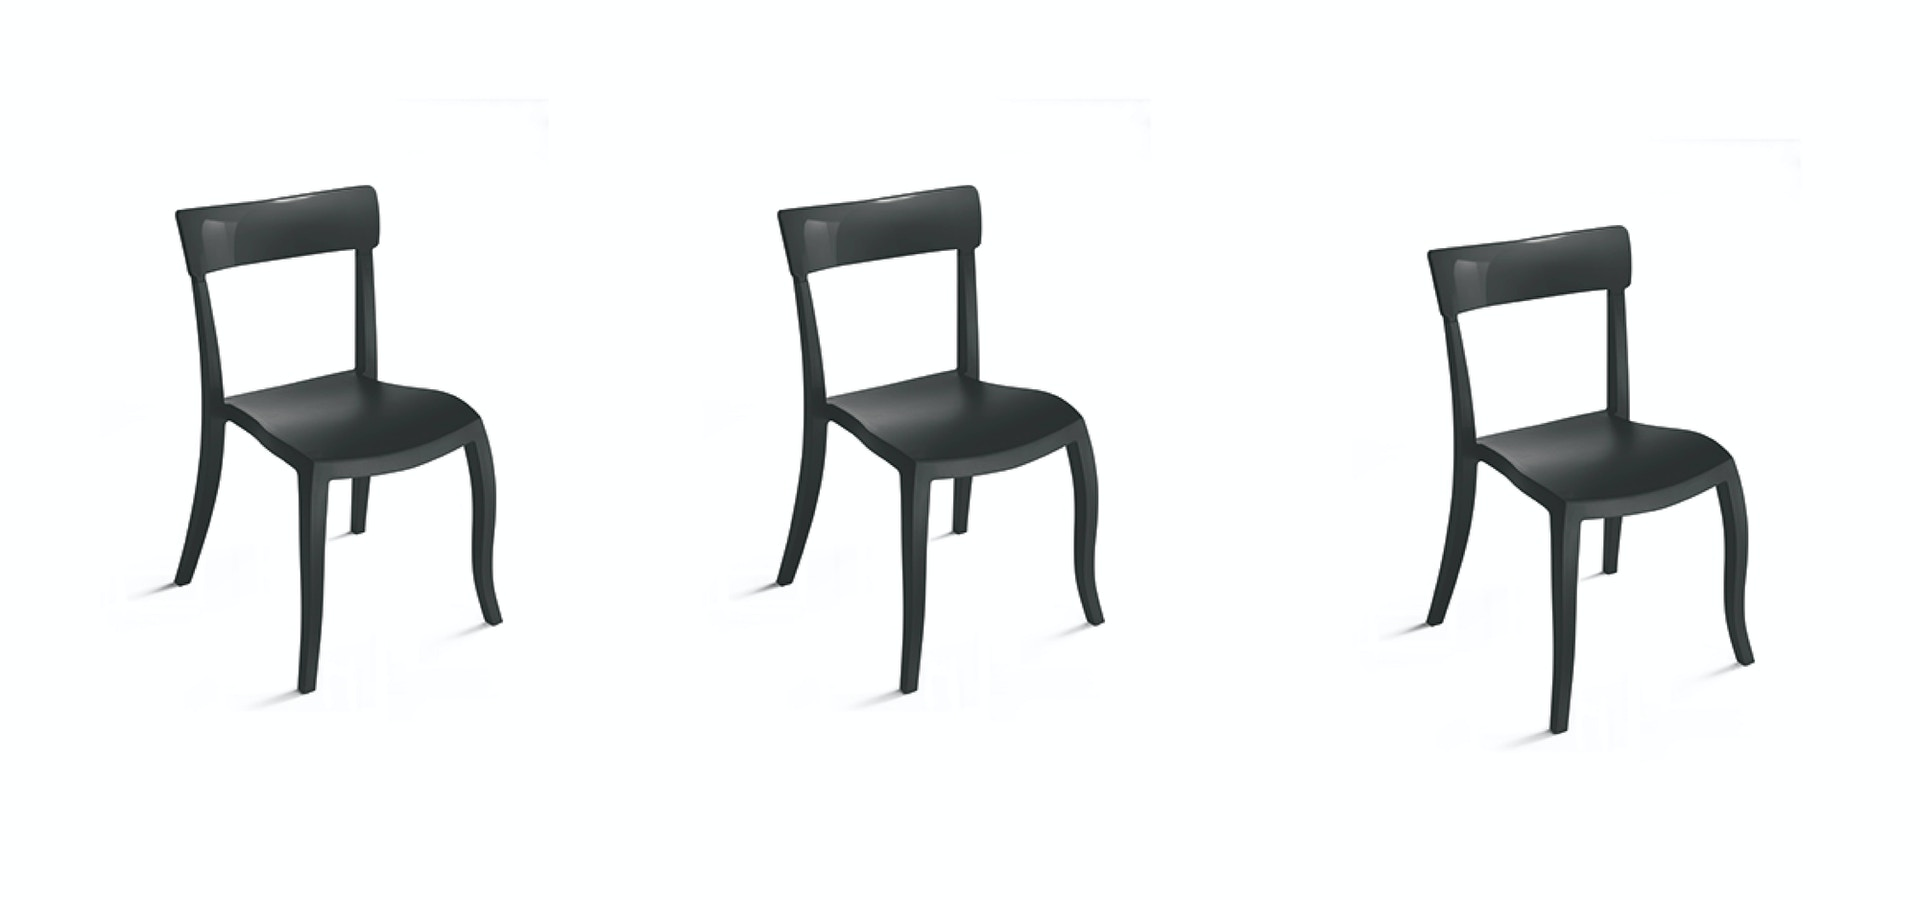 Chairs Stosa - Model Maria 10098